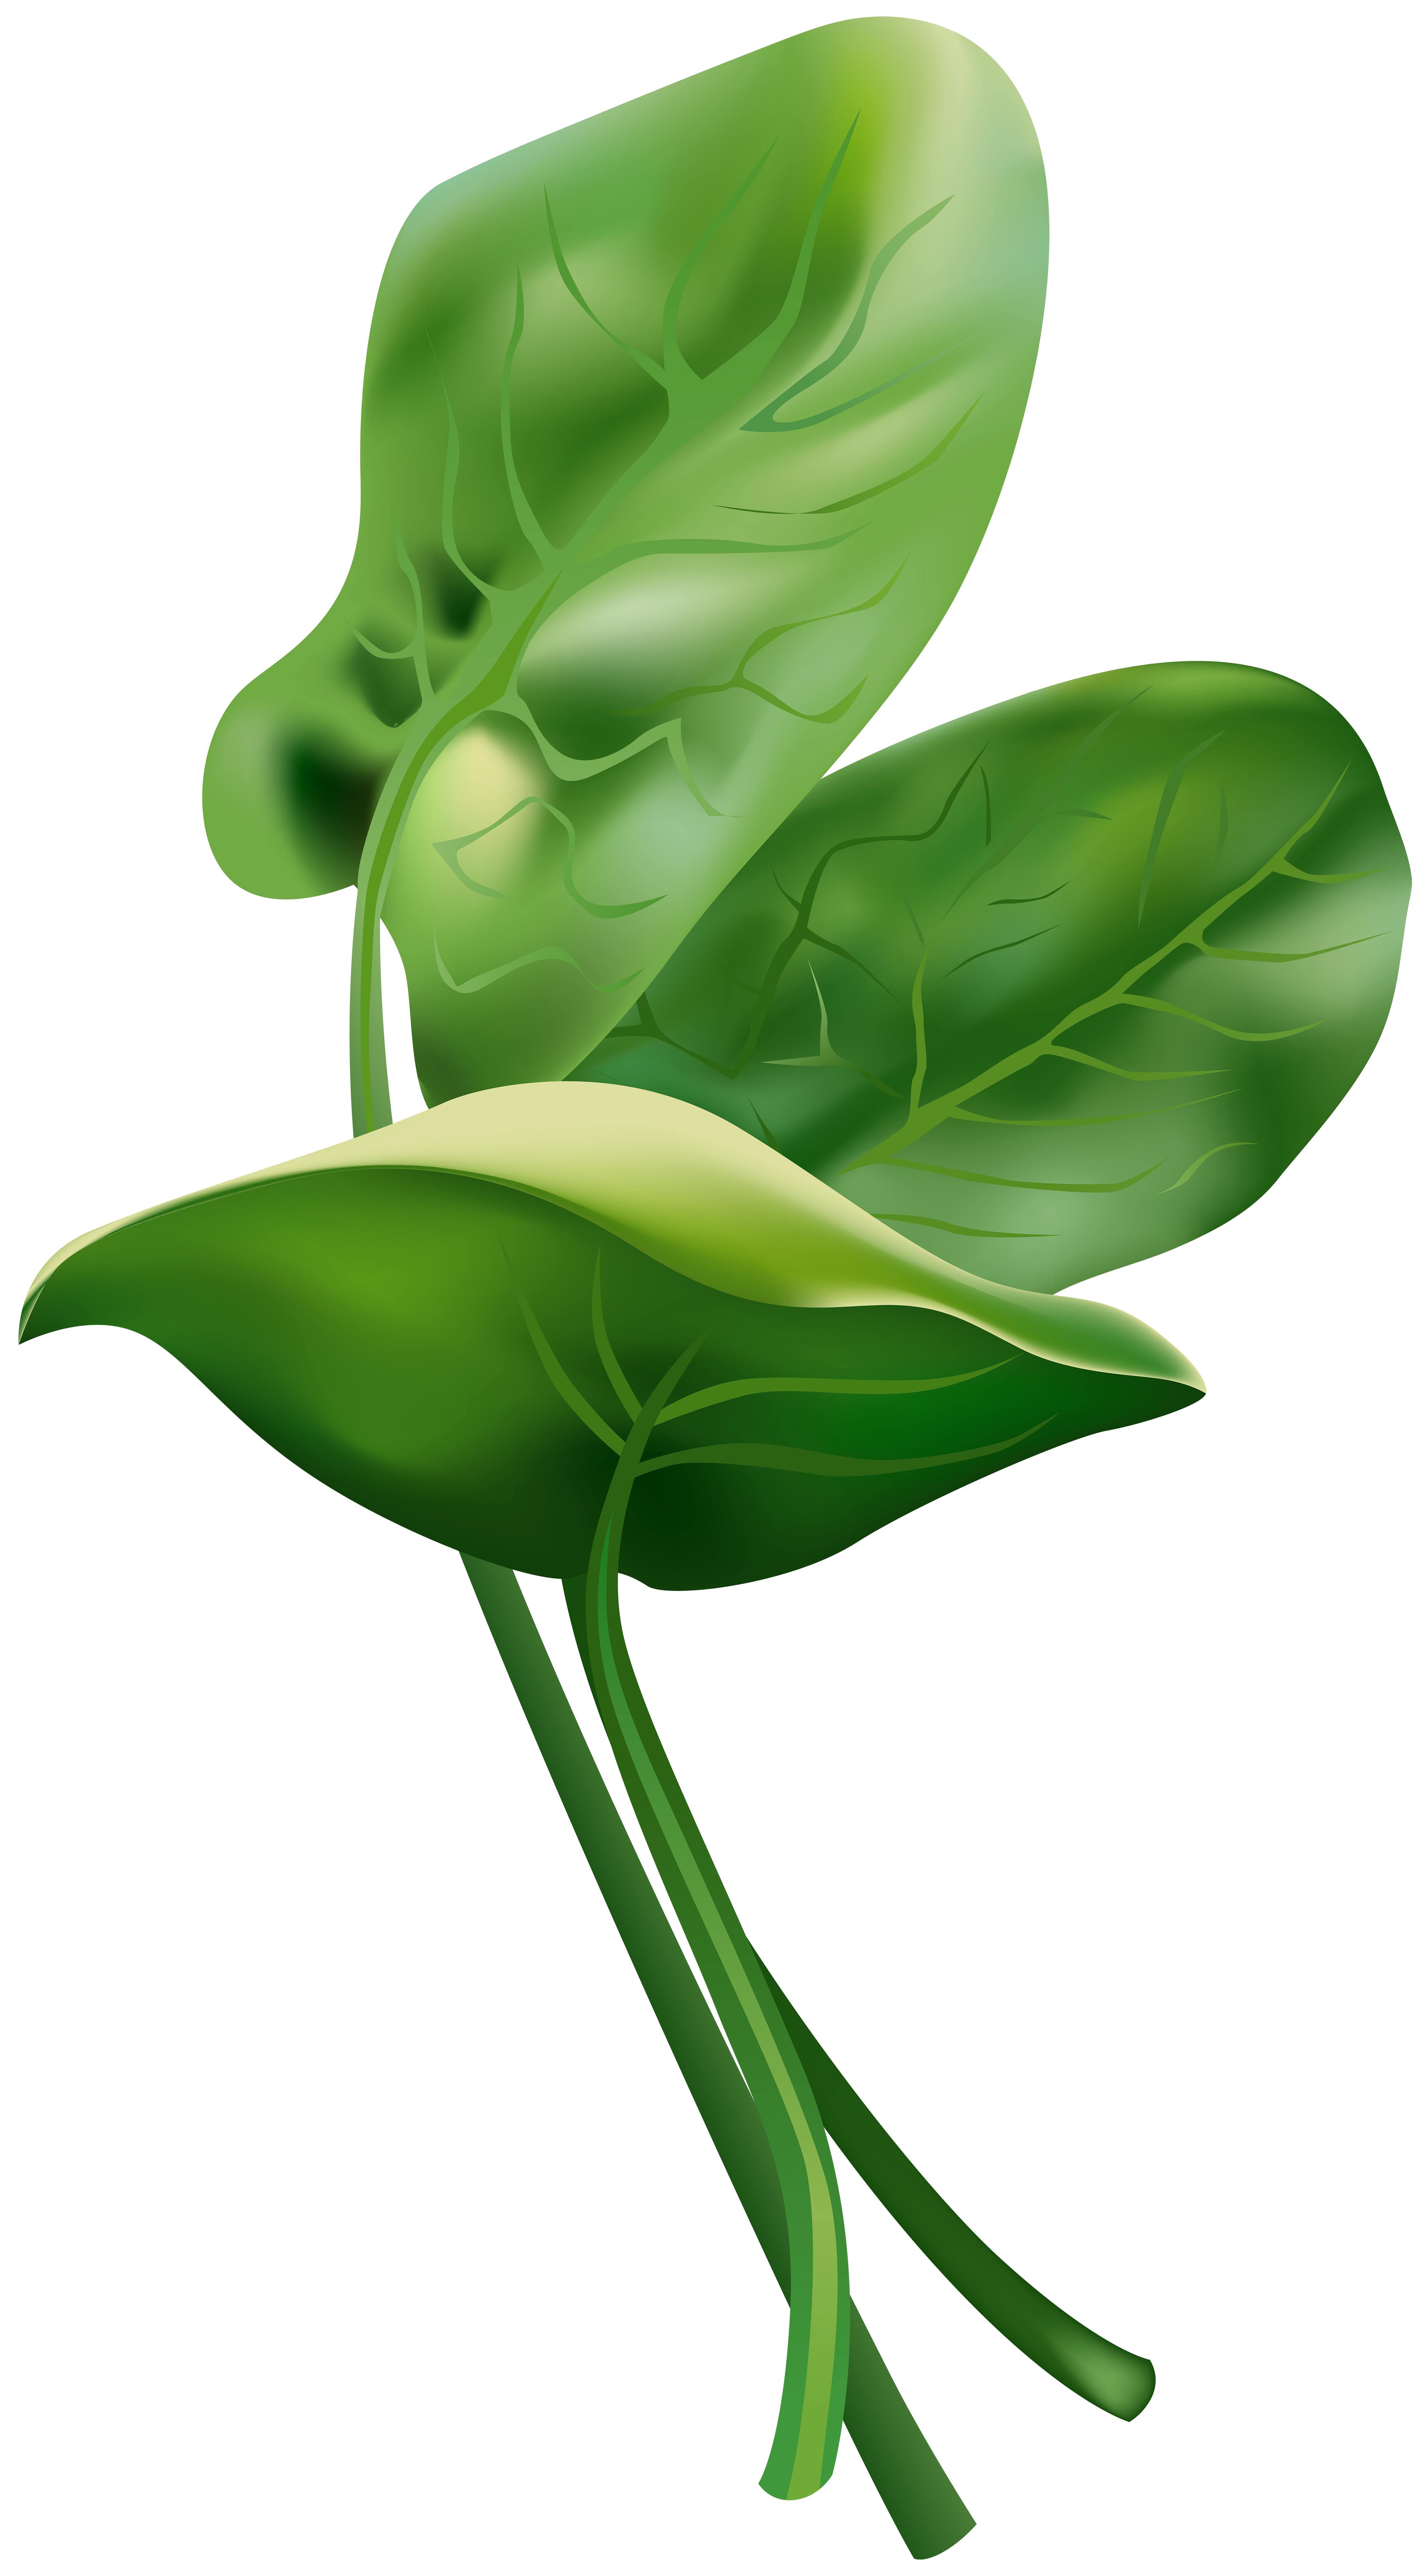 Spinach clipart clip art. Free png image gallery